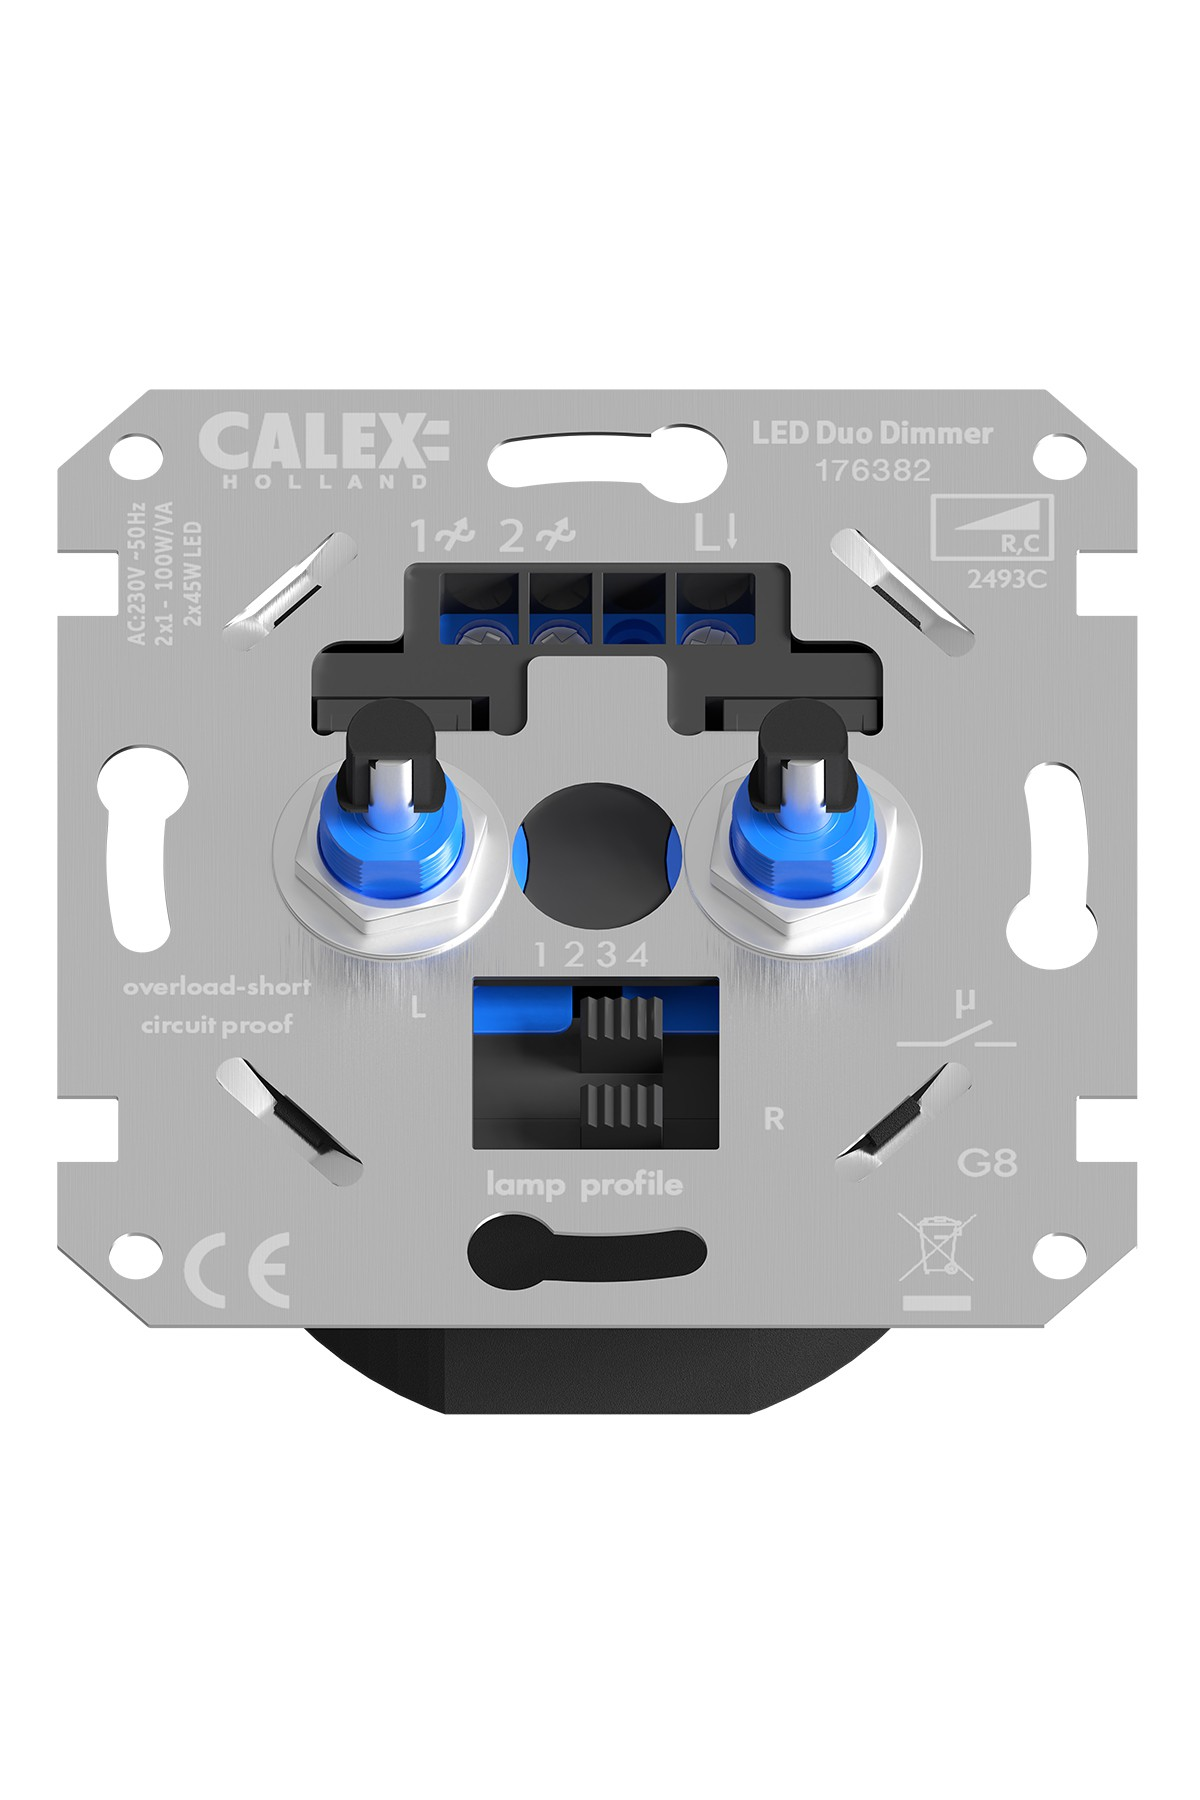 Calex Duo RC Dimmer flush mounting 230V (LED 2x45W) - (GLS 2x100W